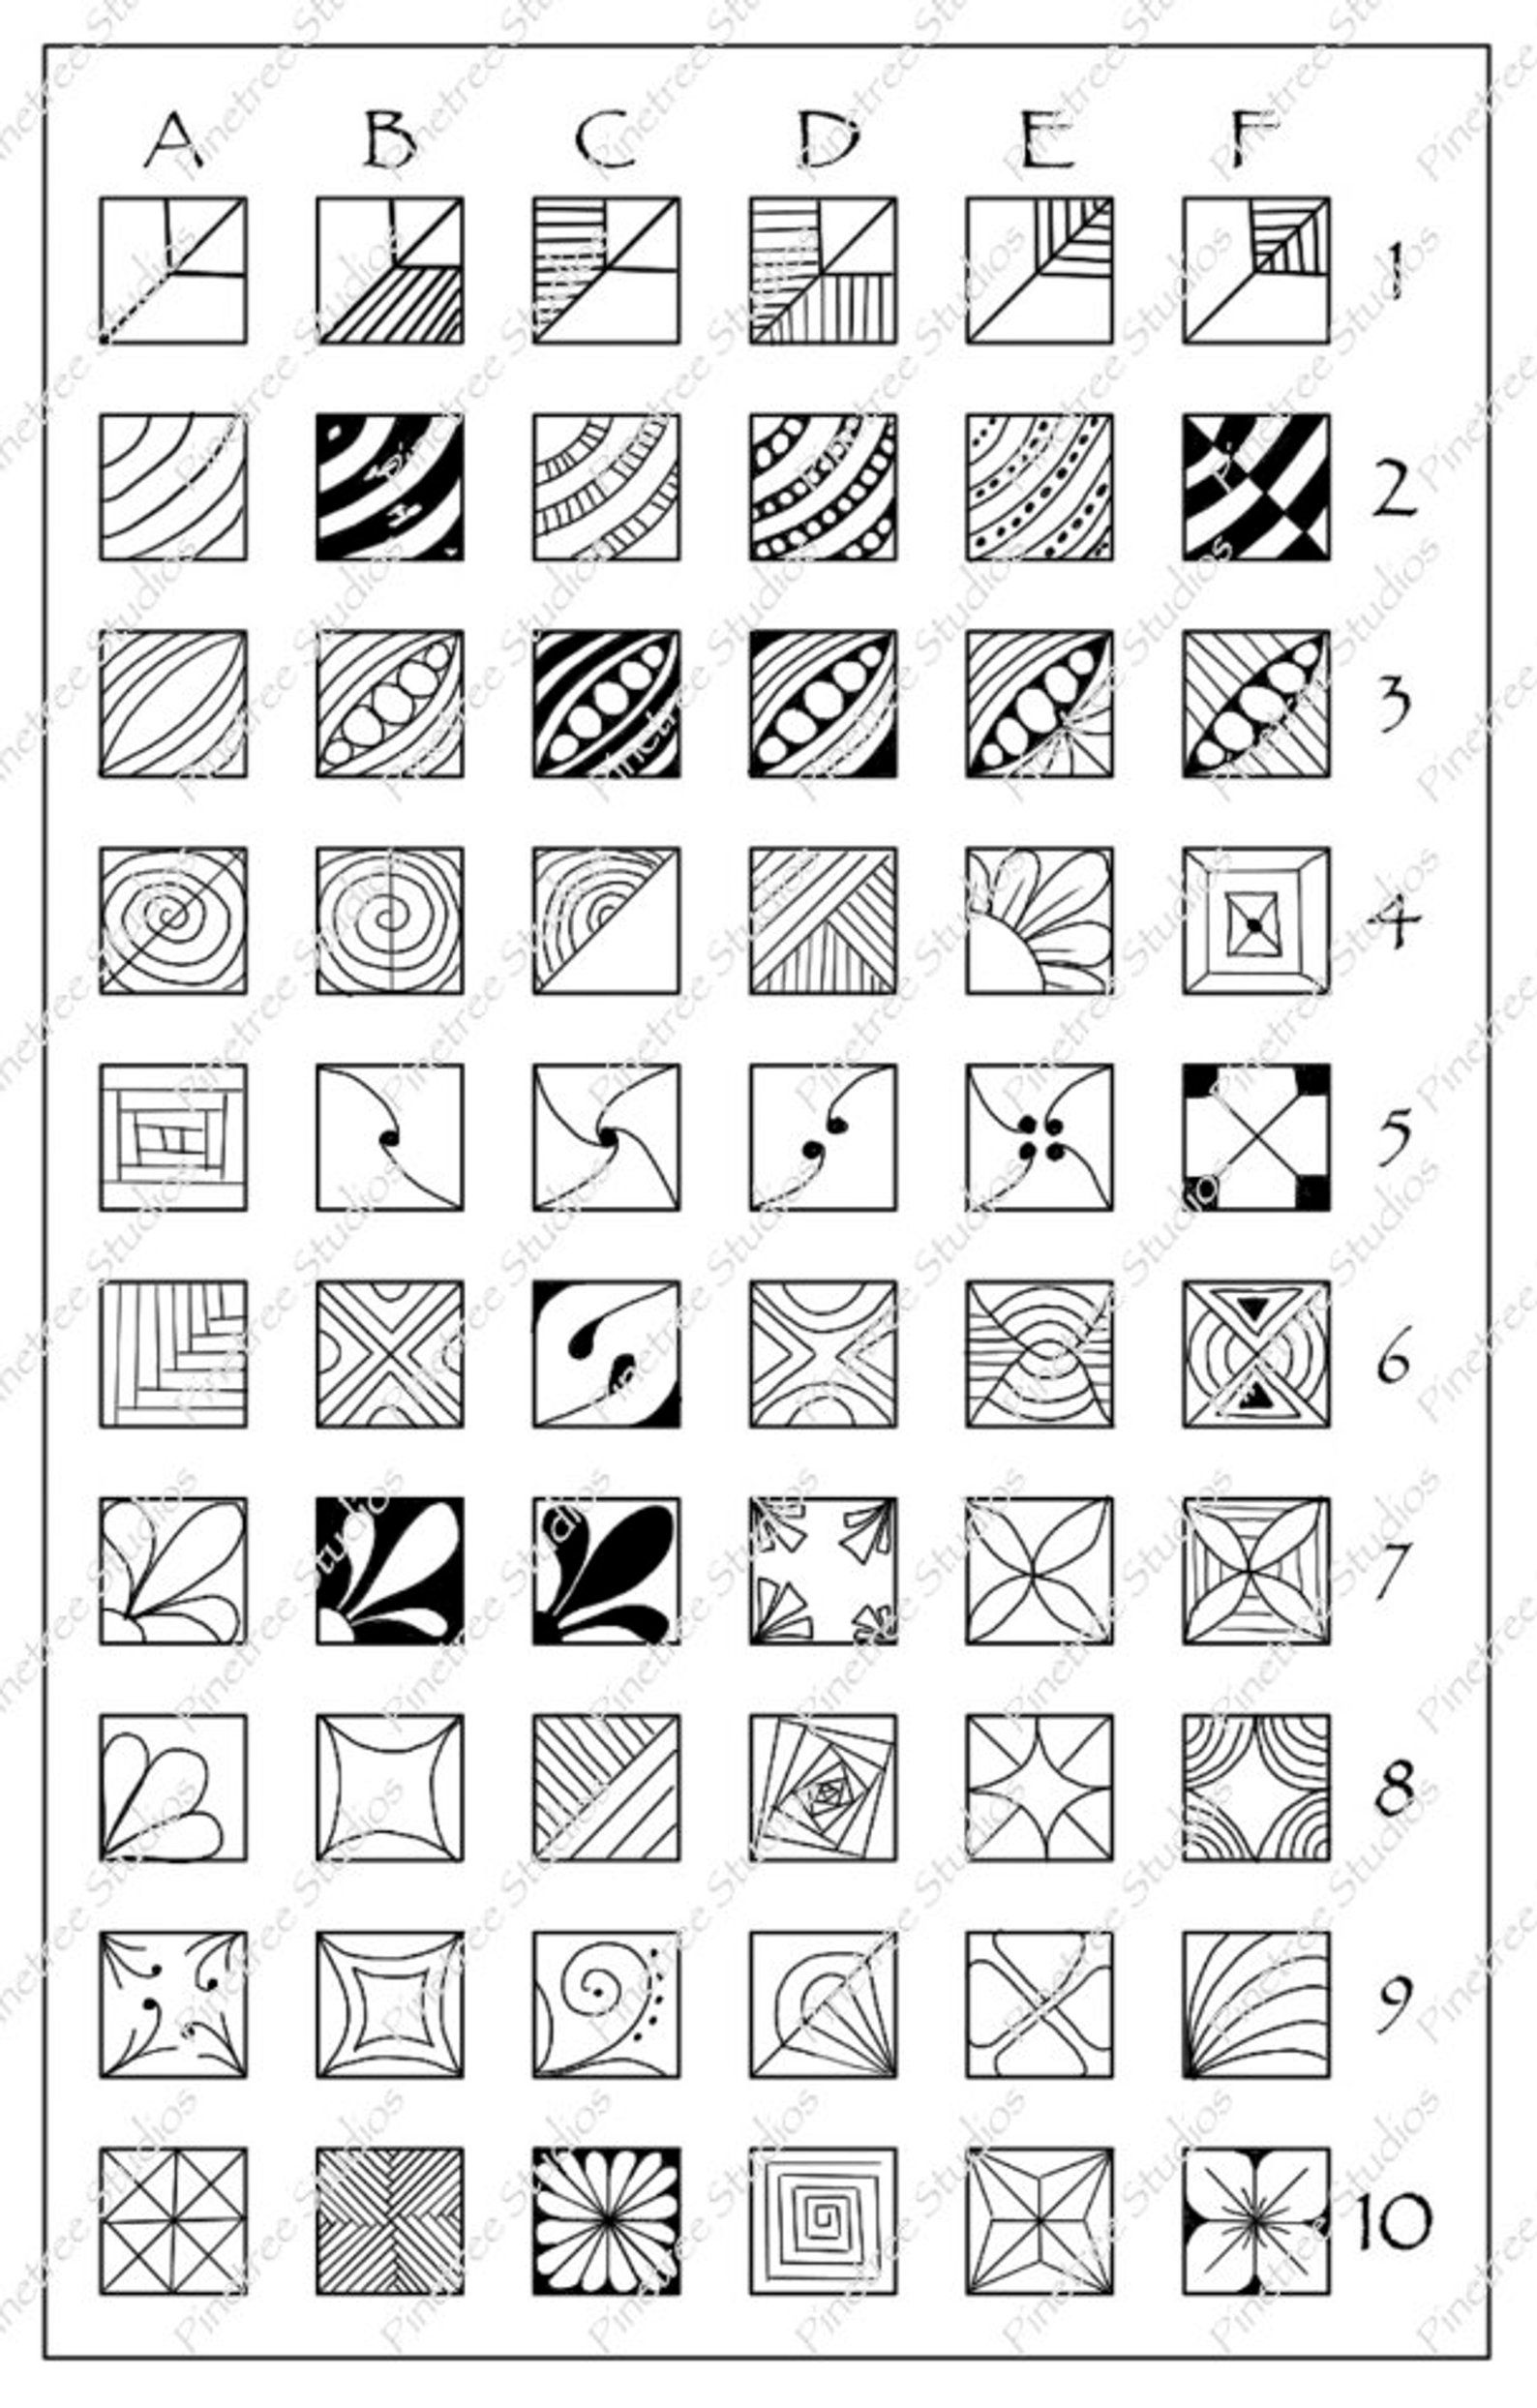 Square Fragments Patterns Chart 5 X 8